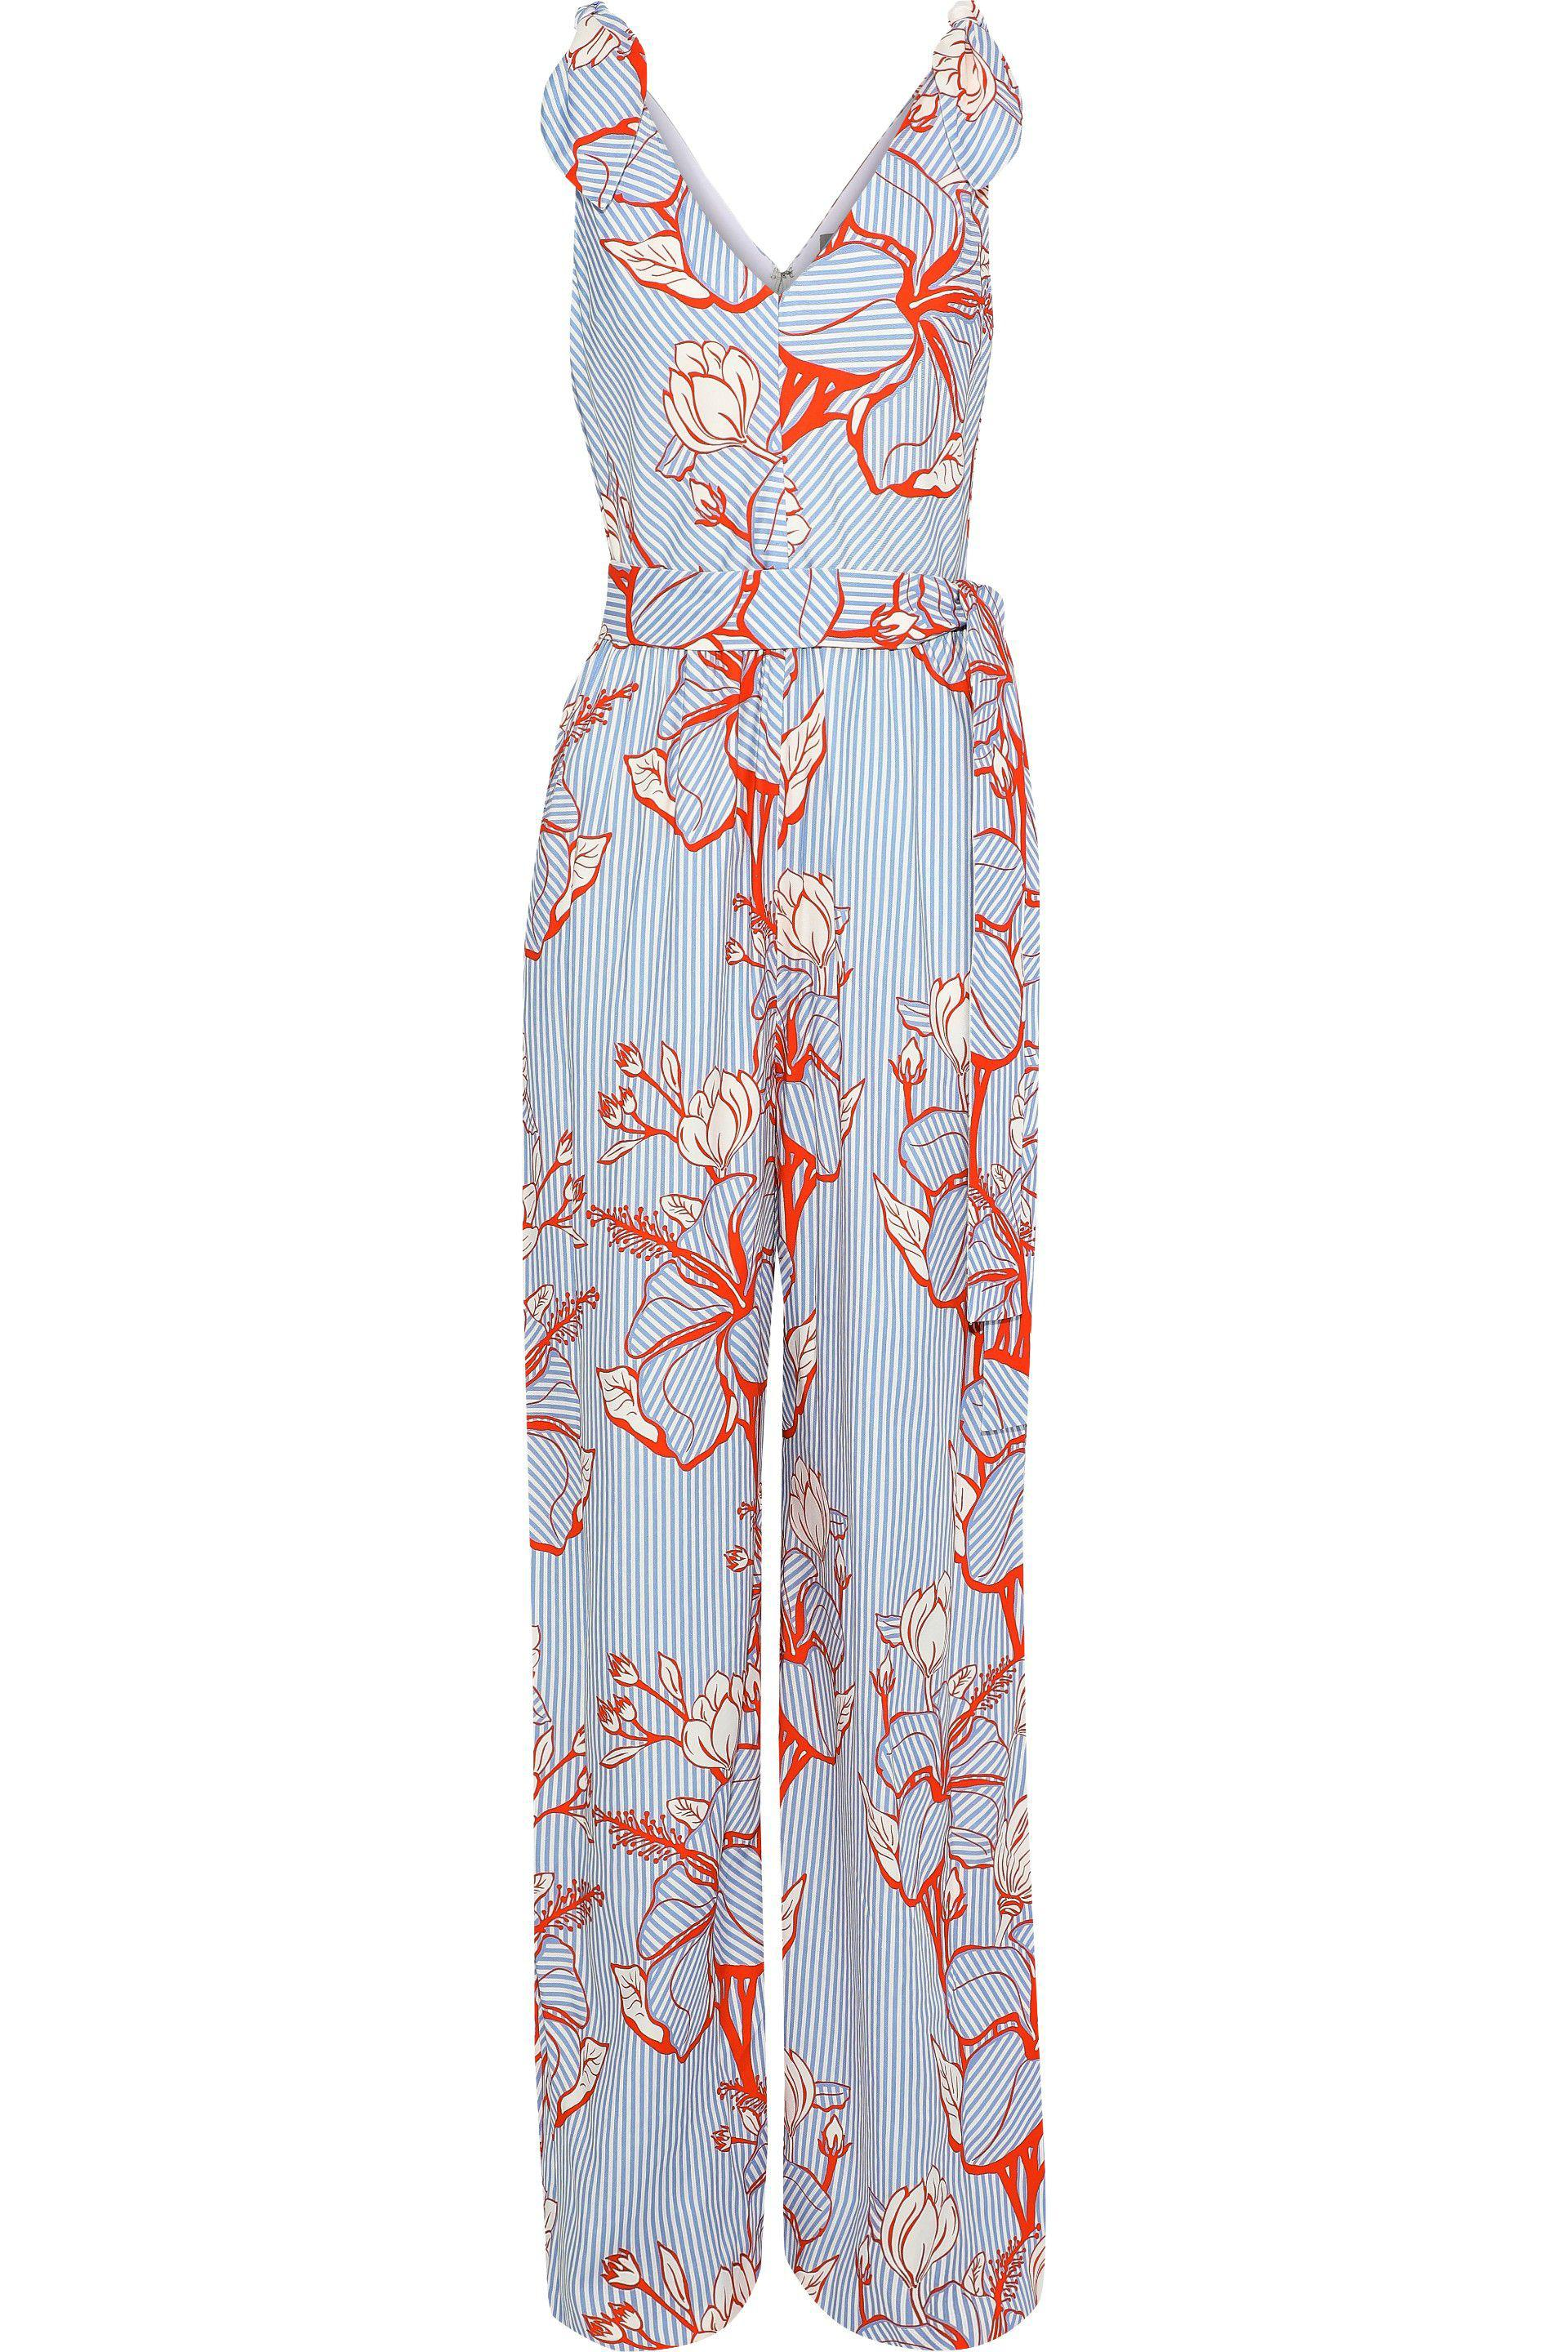 7d27670c489 Lyst - Lela Rose Woman Bow-detailed Printed Twill Jumpsuit Light ...